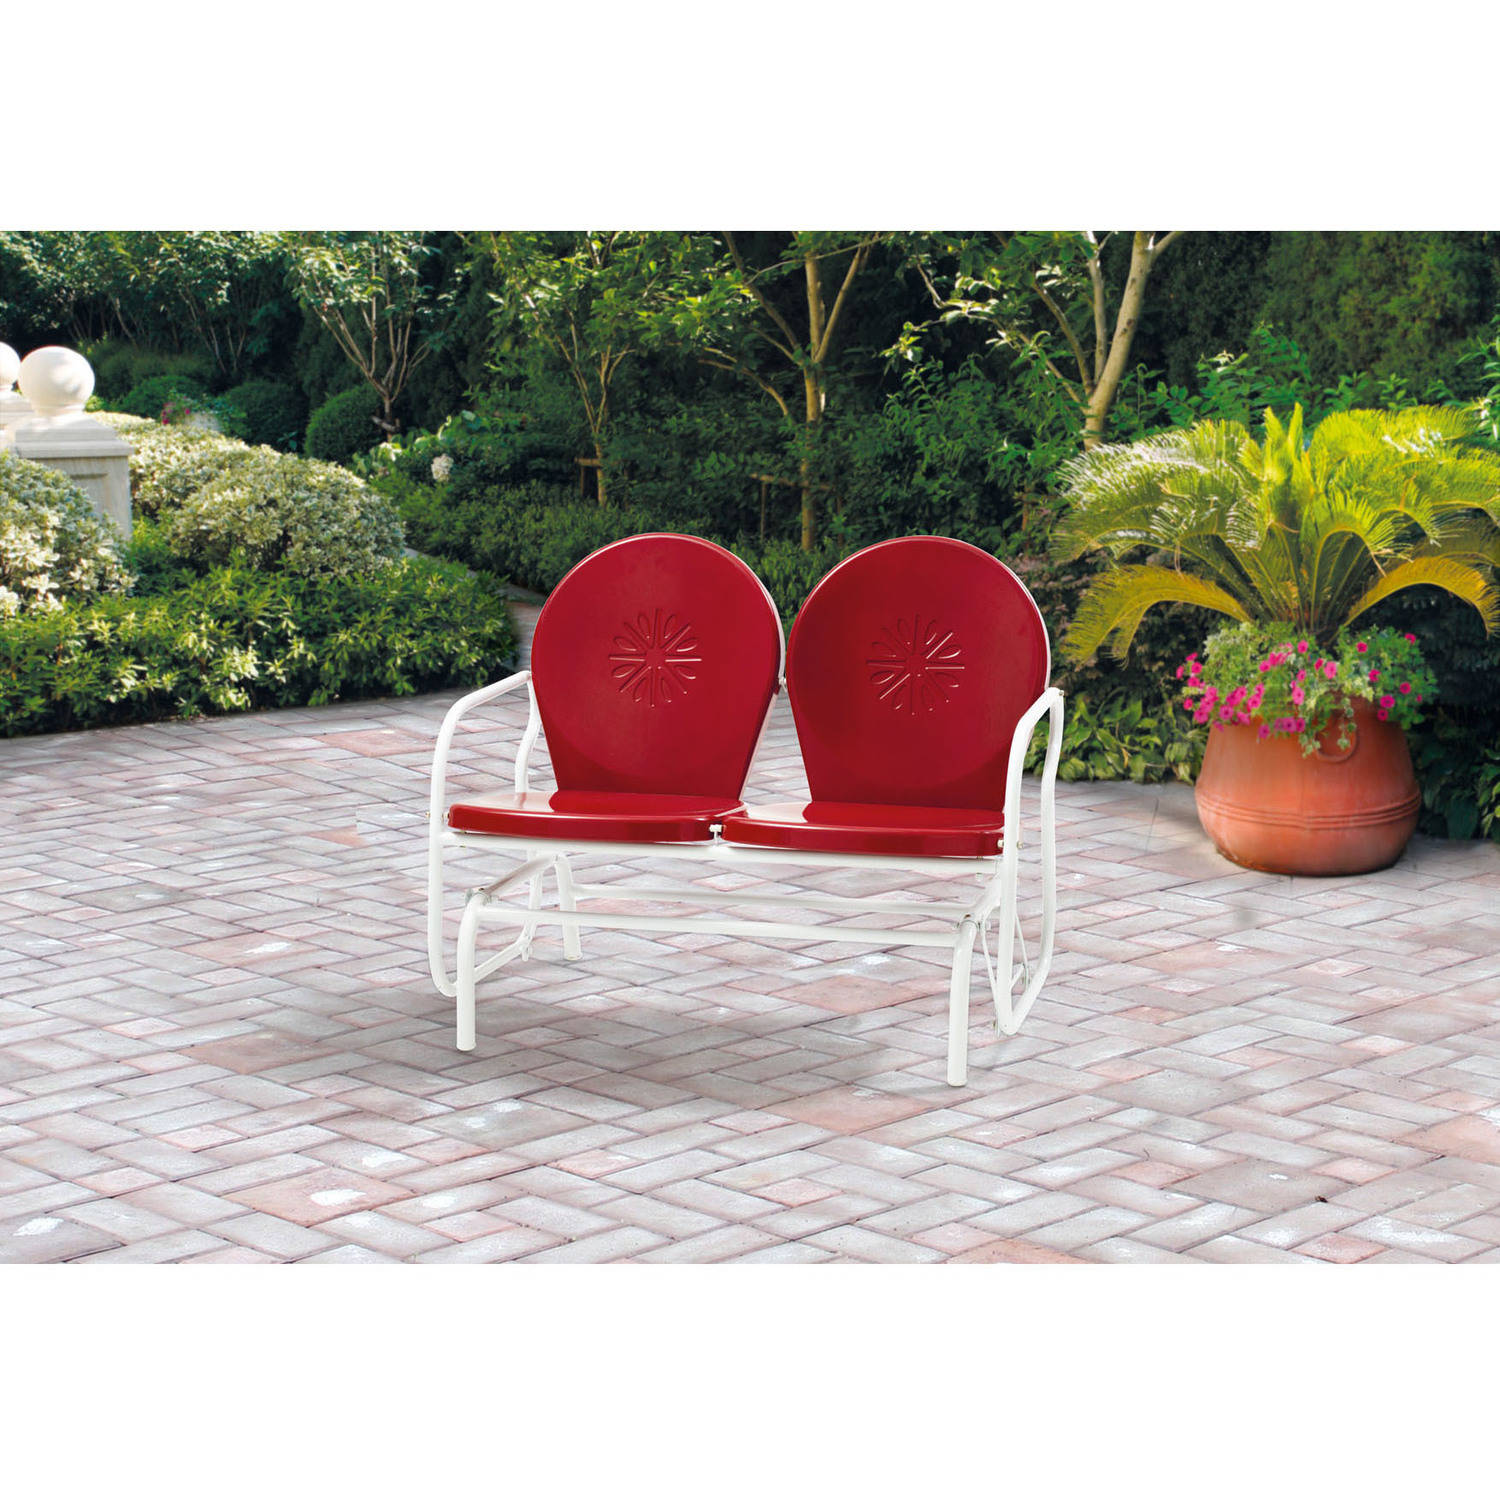 Surprising Details About Mainstays Outdoor Retro Metal Glider Red Seats 2 Onthecornerstone Fun Painted Chair Ideas Images Onthecornerstoneorg